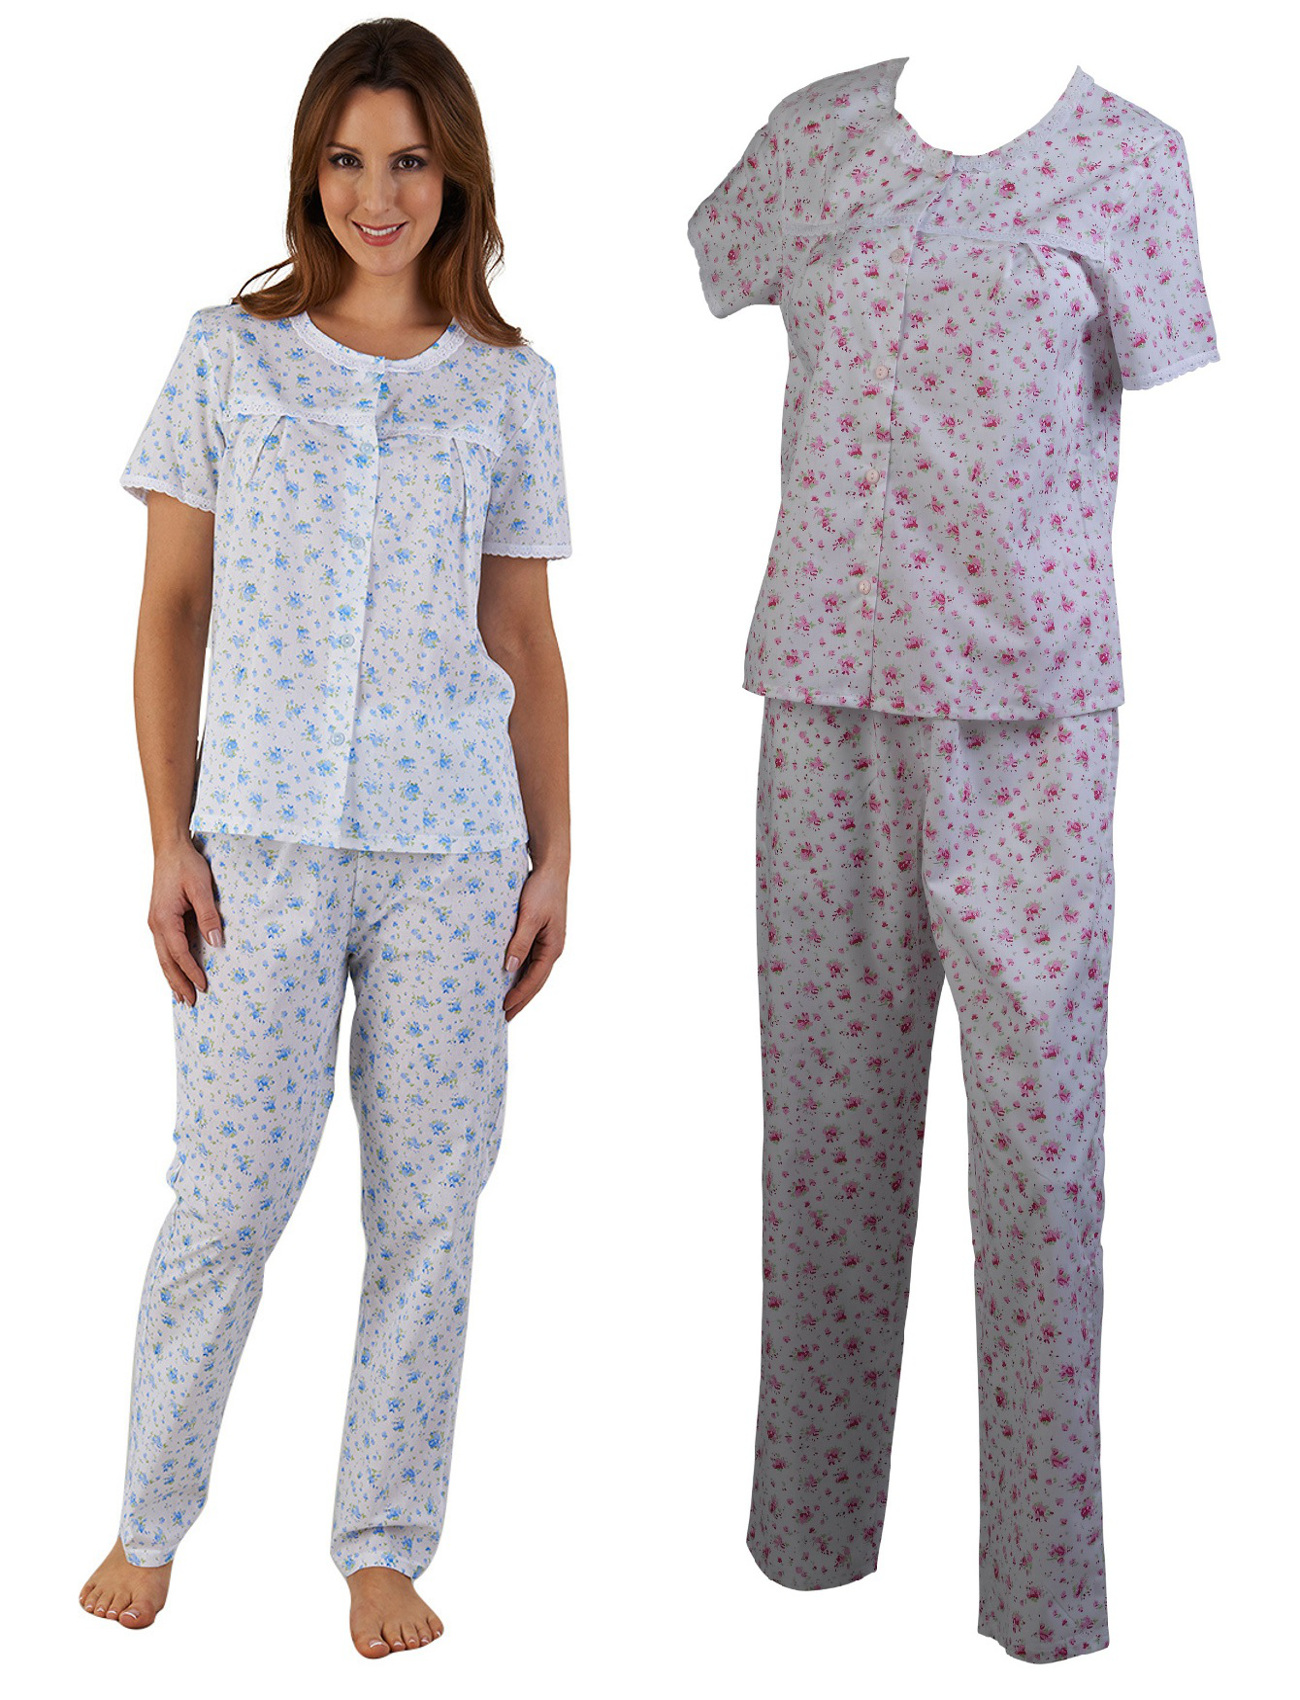 Button up Pajamas; Button up Pajamas. $ $ Boy or Girl (Girl/ruffles & Boy/No ruffles) Choose your size. Choose color. Add an Applique. Select A Monogram. Thread Color. First Name Initial. Middle Name Initial.